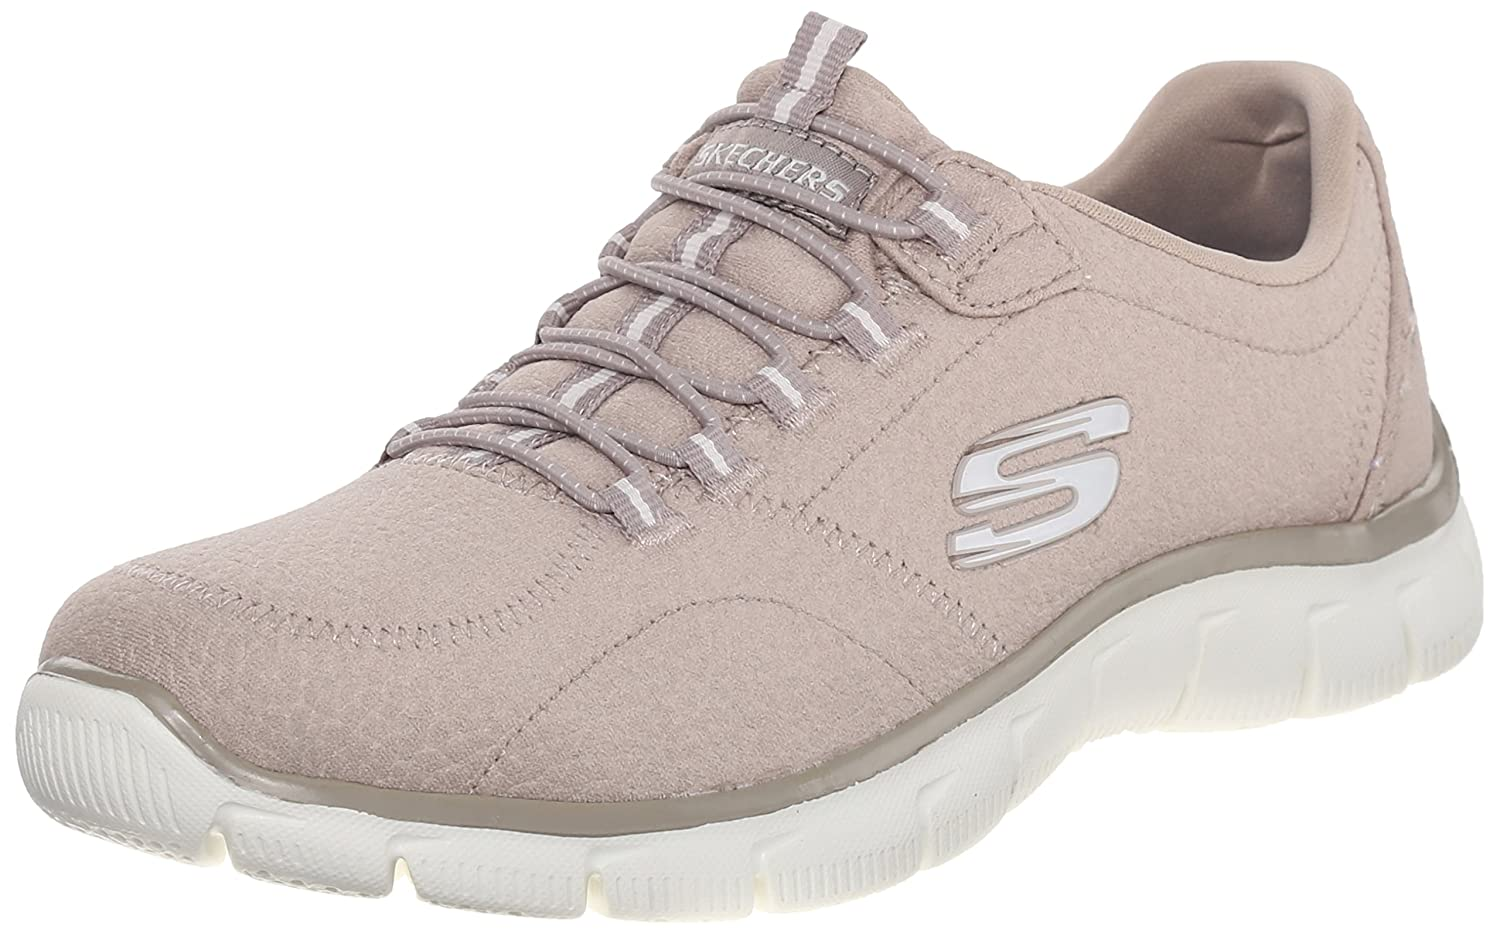 Skechers Empire Take Charge, Scarpe da Ginnastica Basse Donna